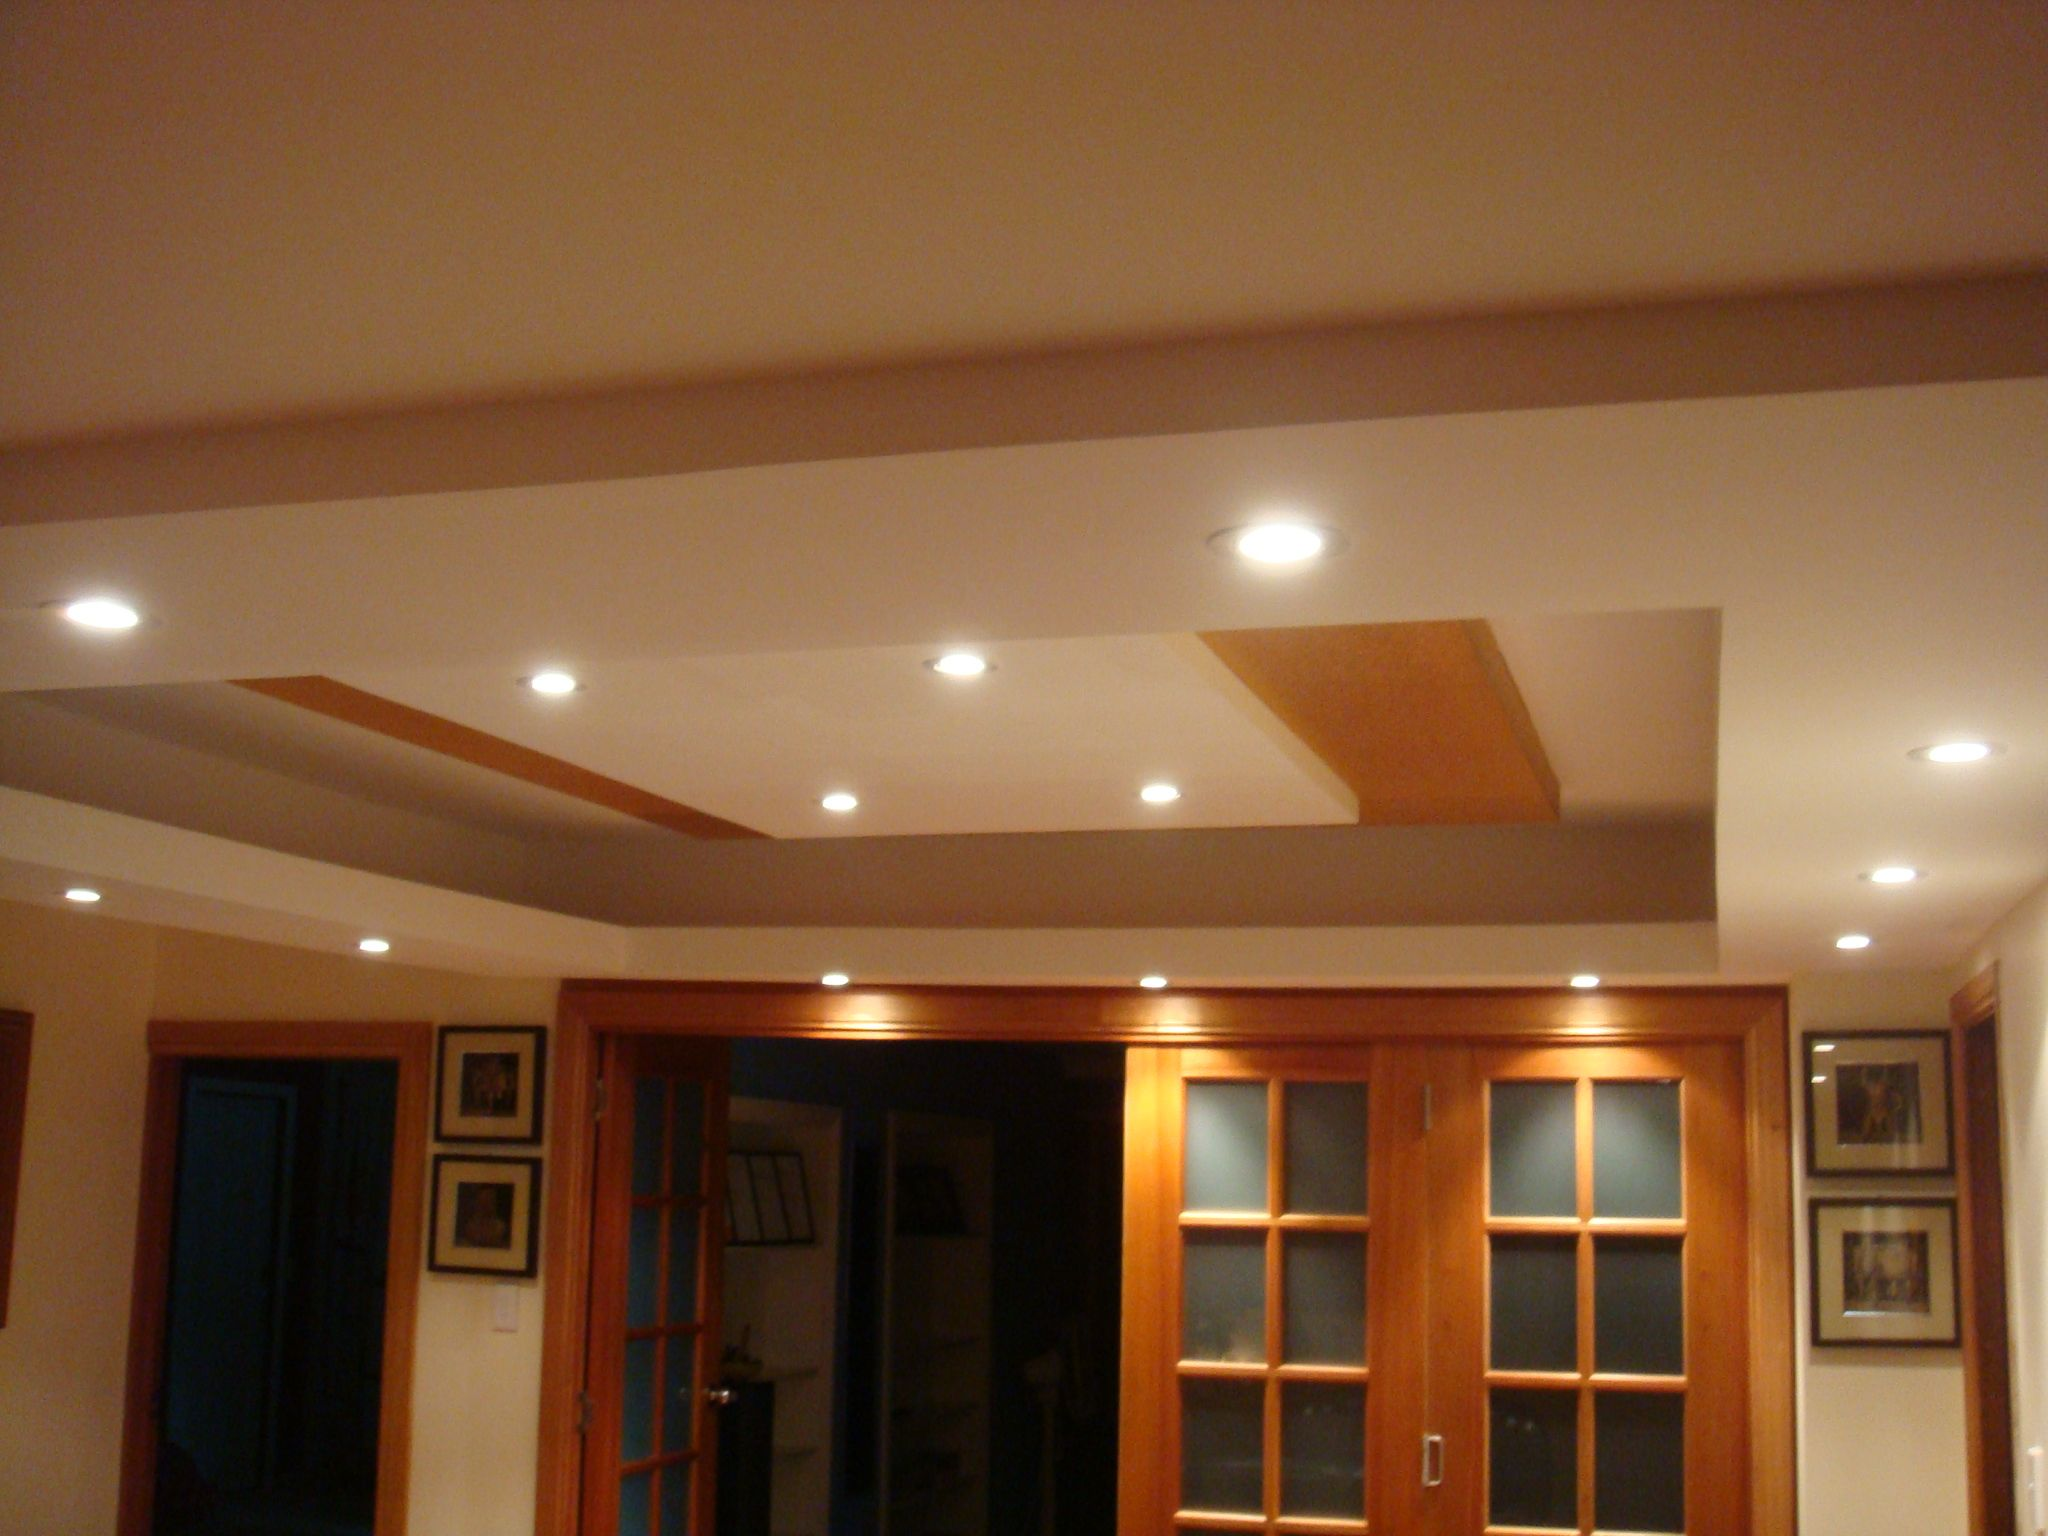 Latest gypsum ceiling designs hall image vectronstudios for Images decor gypsum